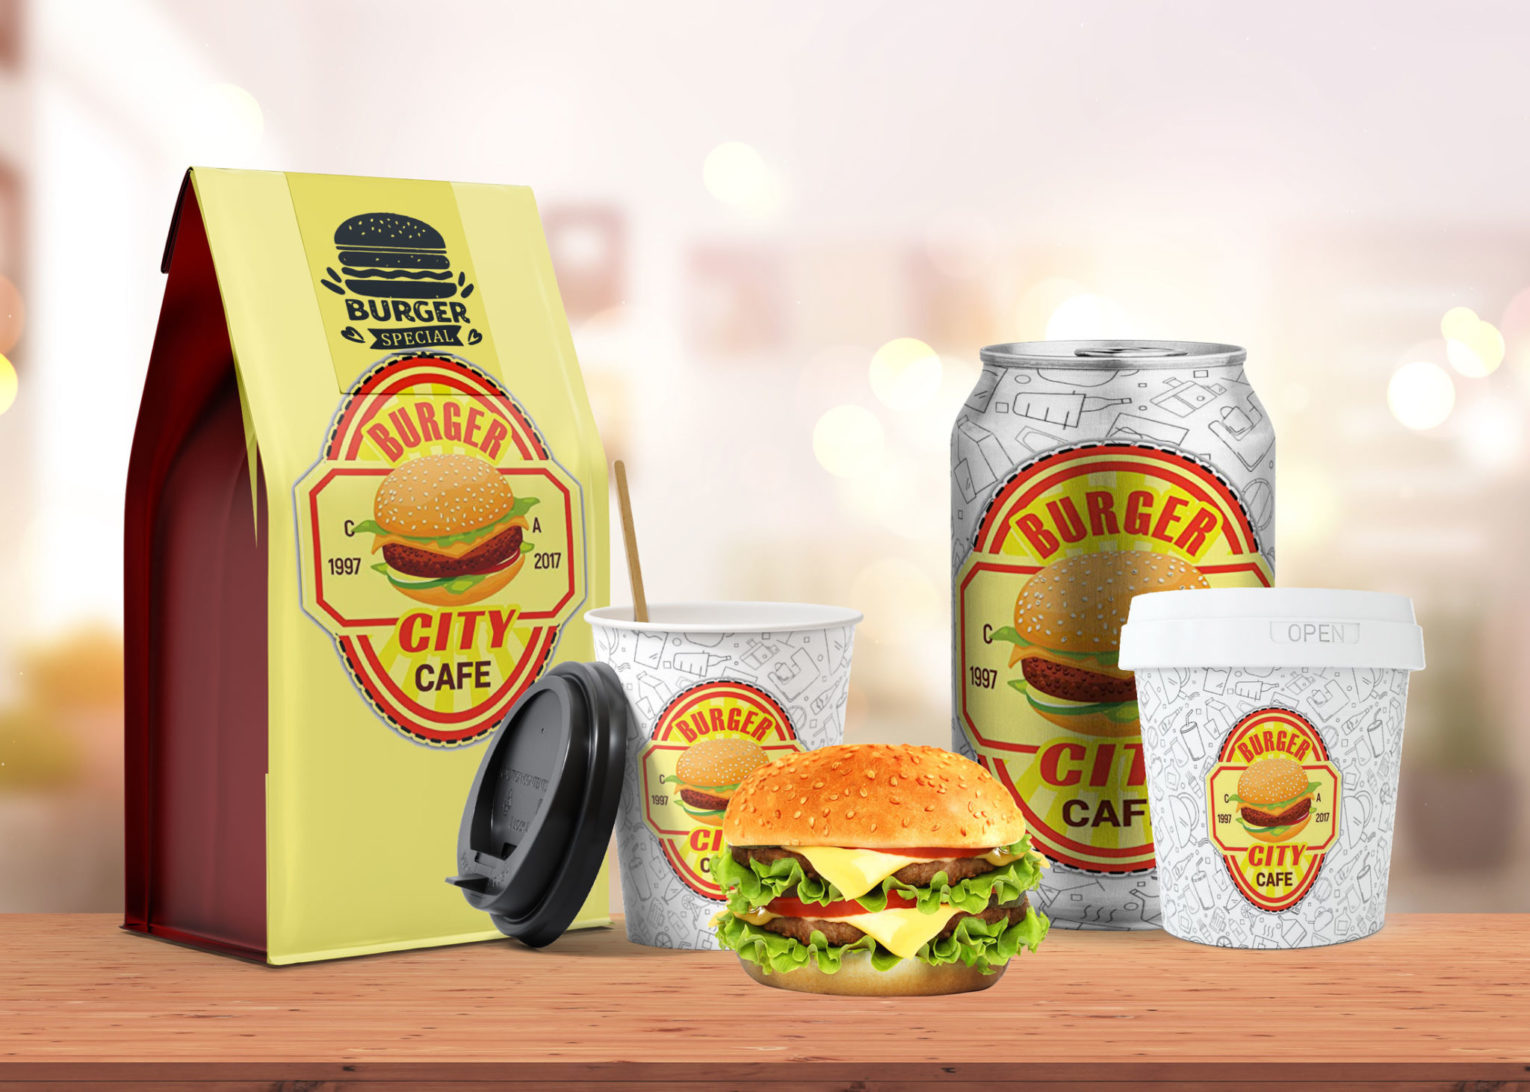 City Cafe Burger Special Packaging Combo Mockup